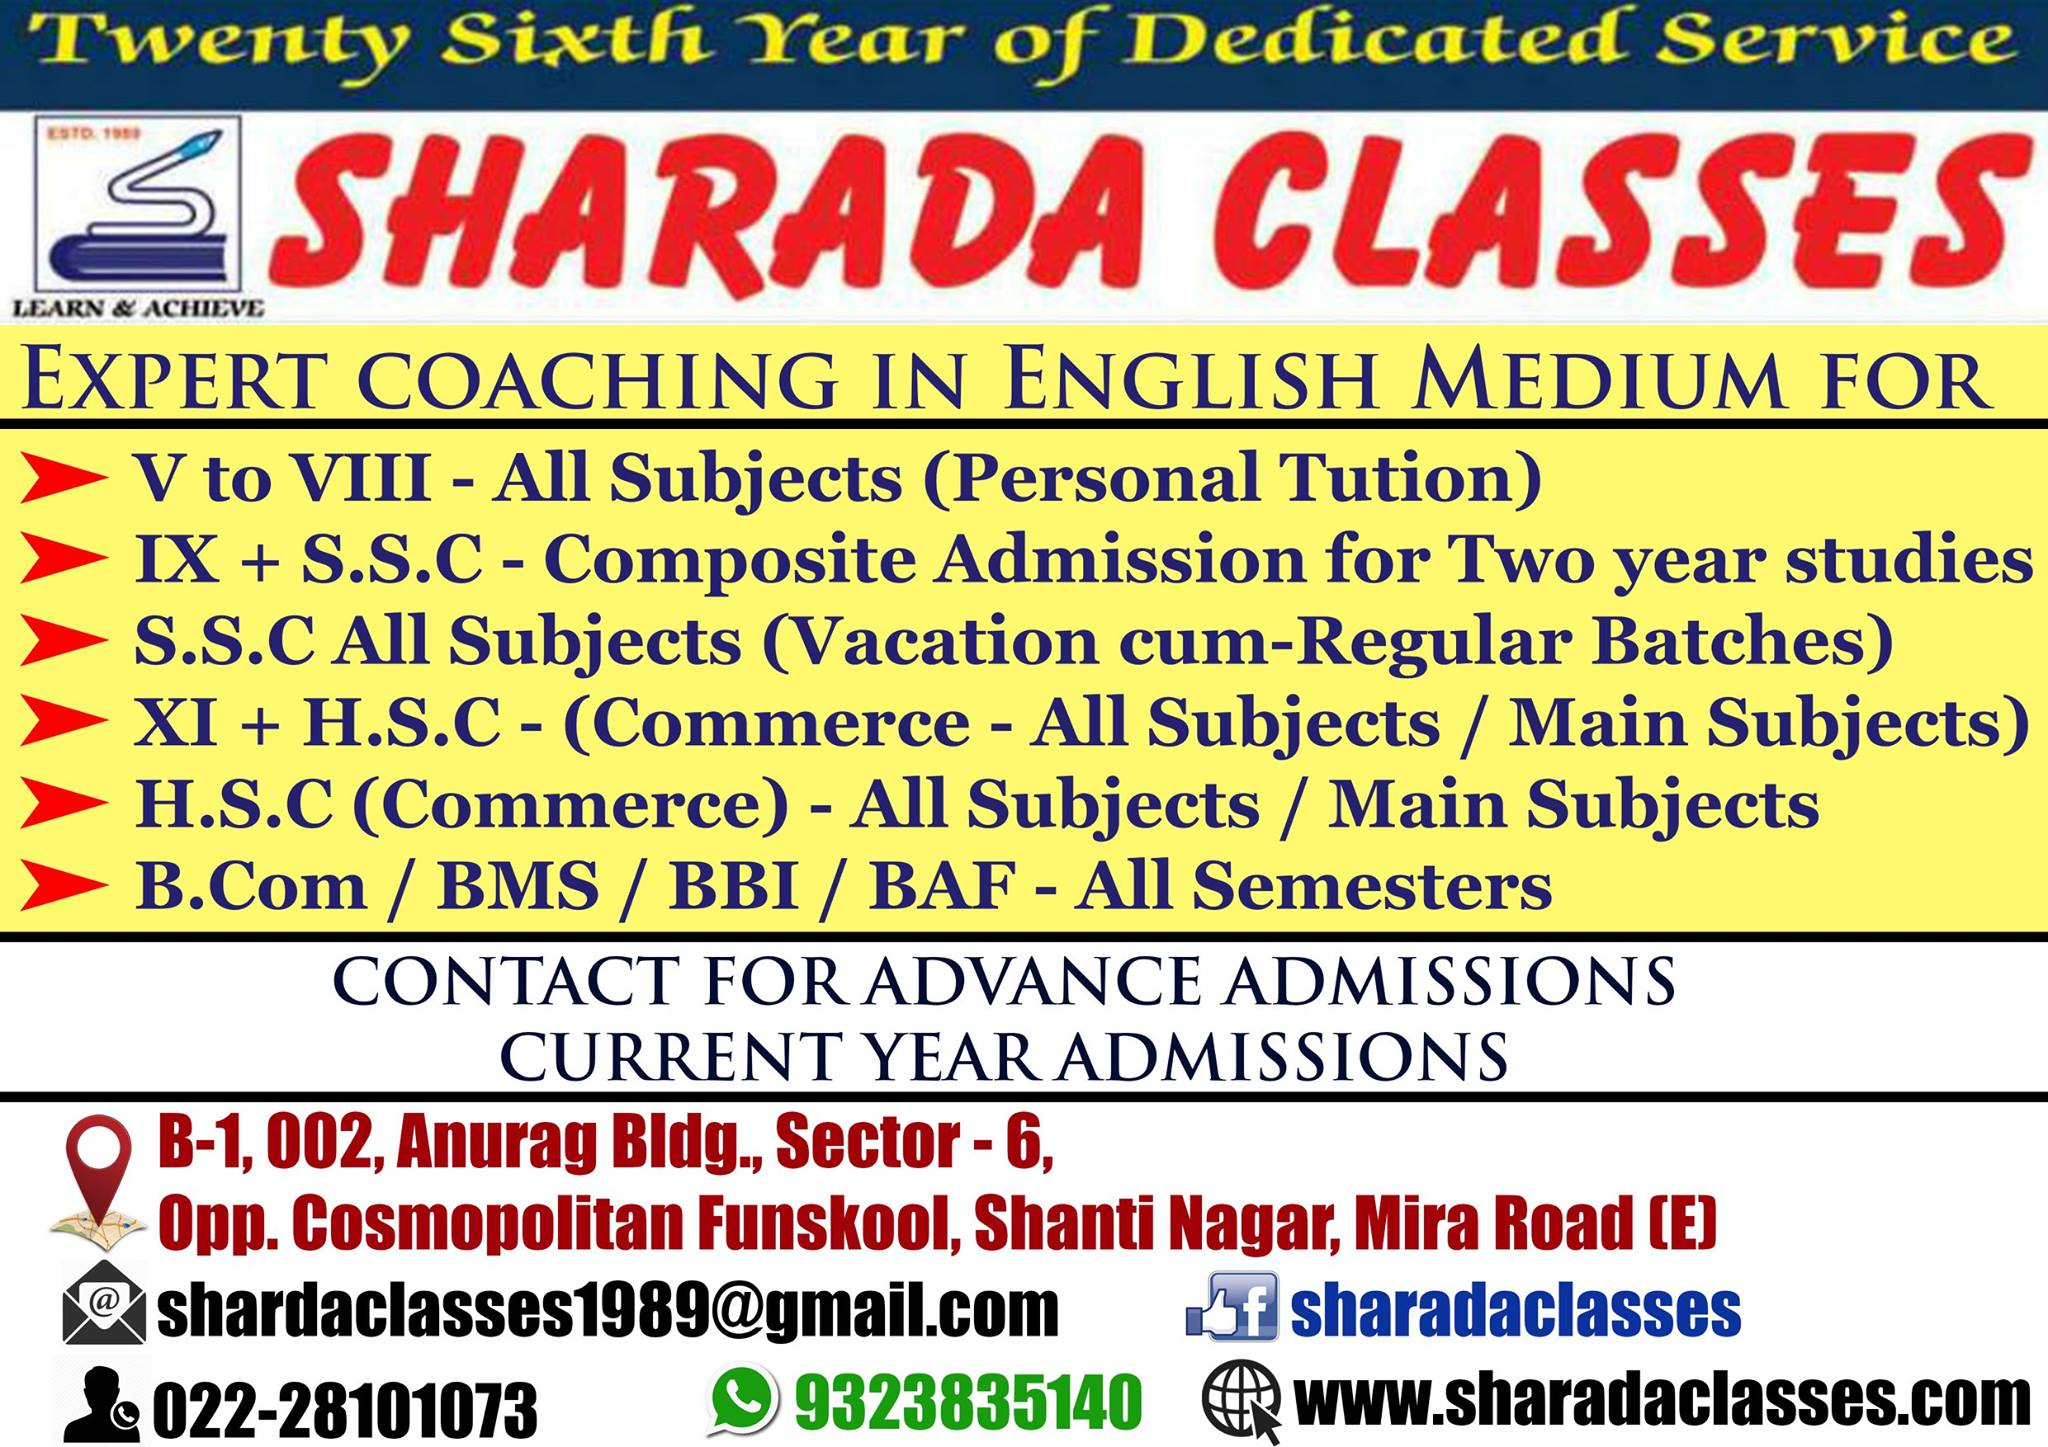 SHARADA CLASSES